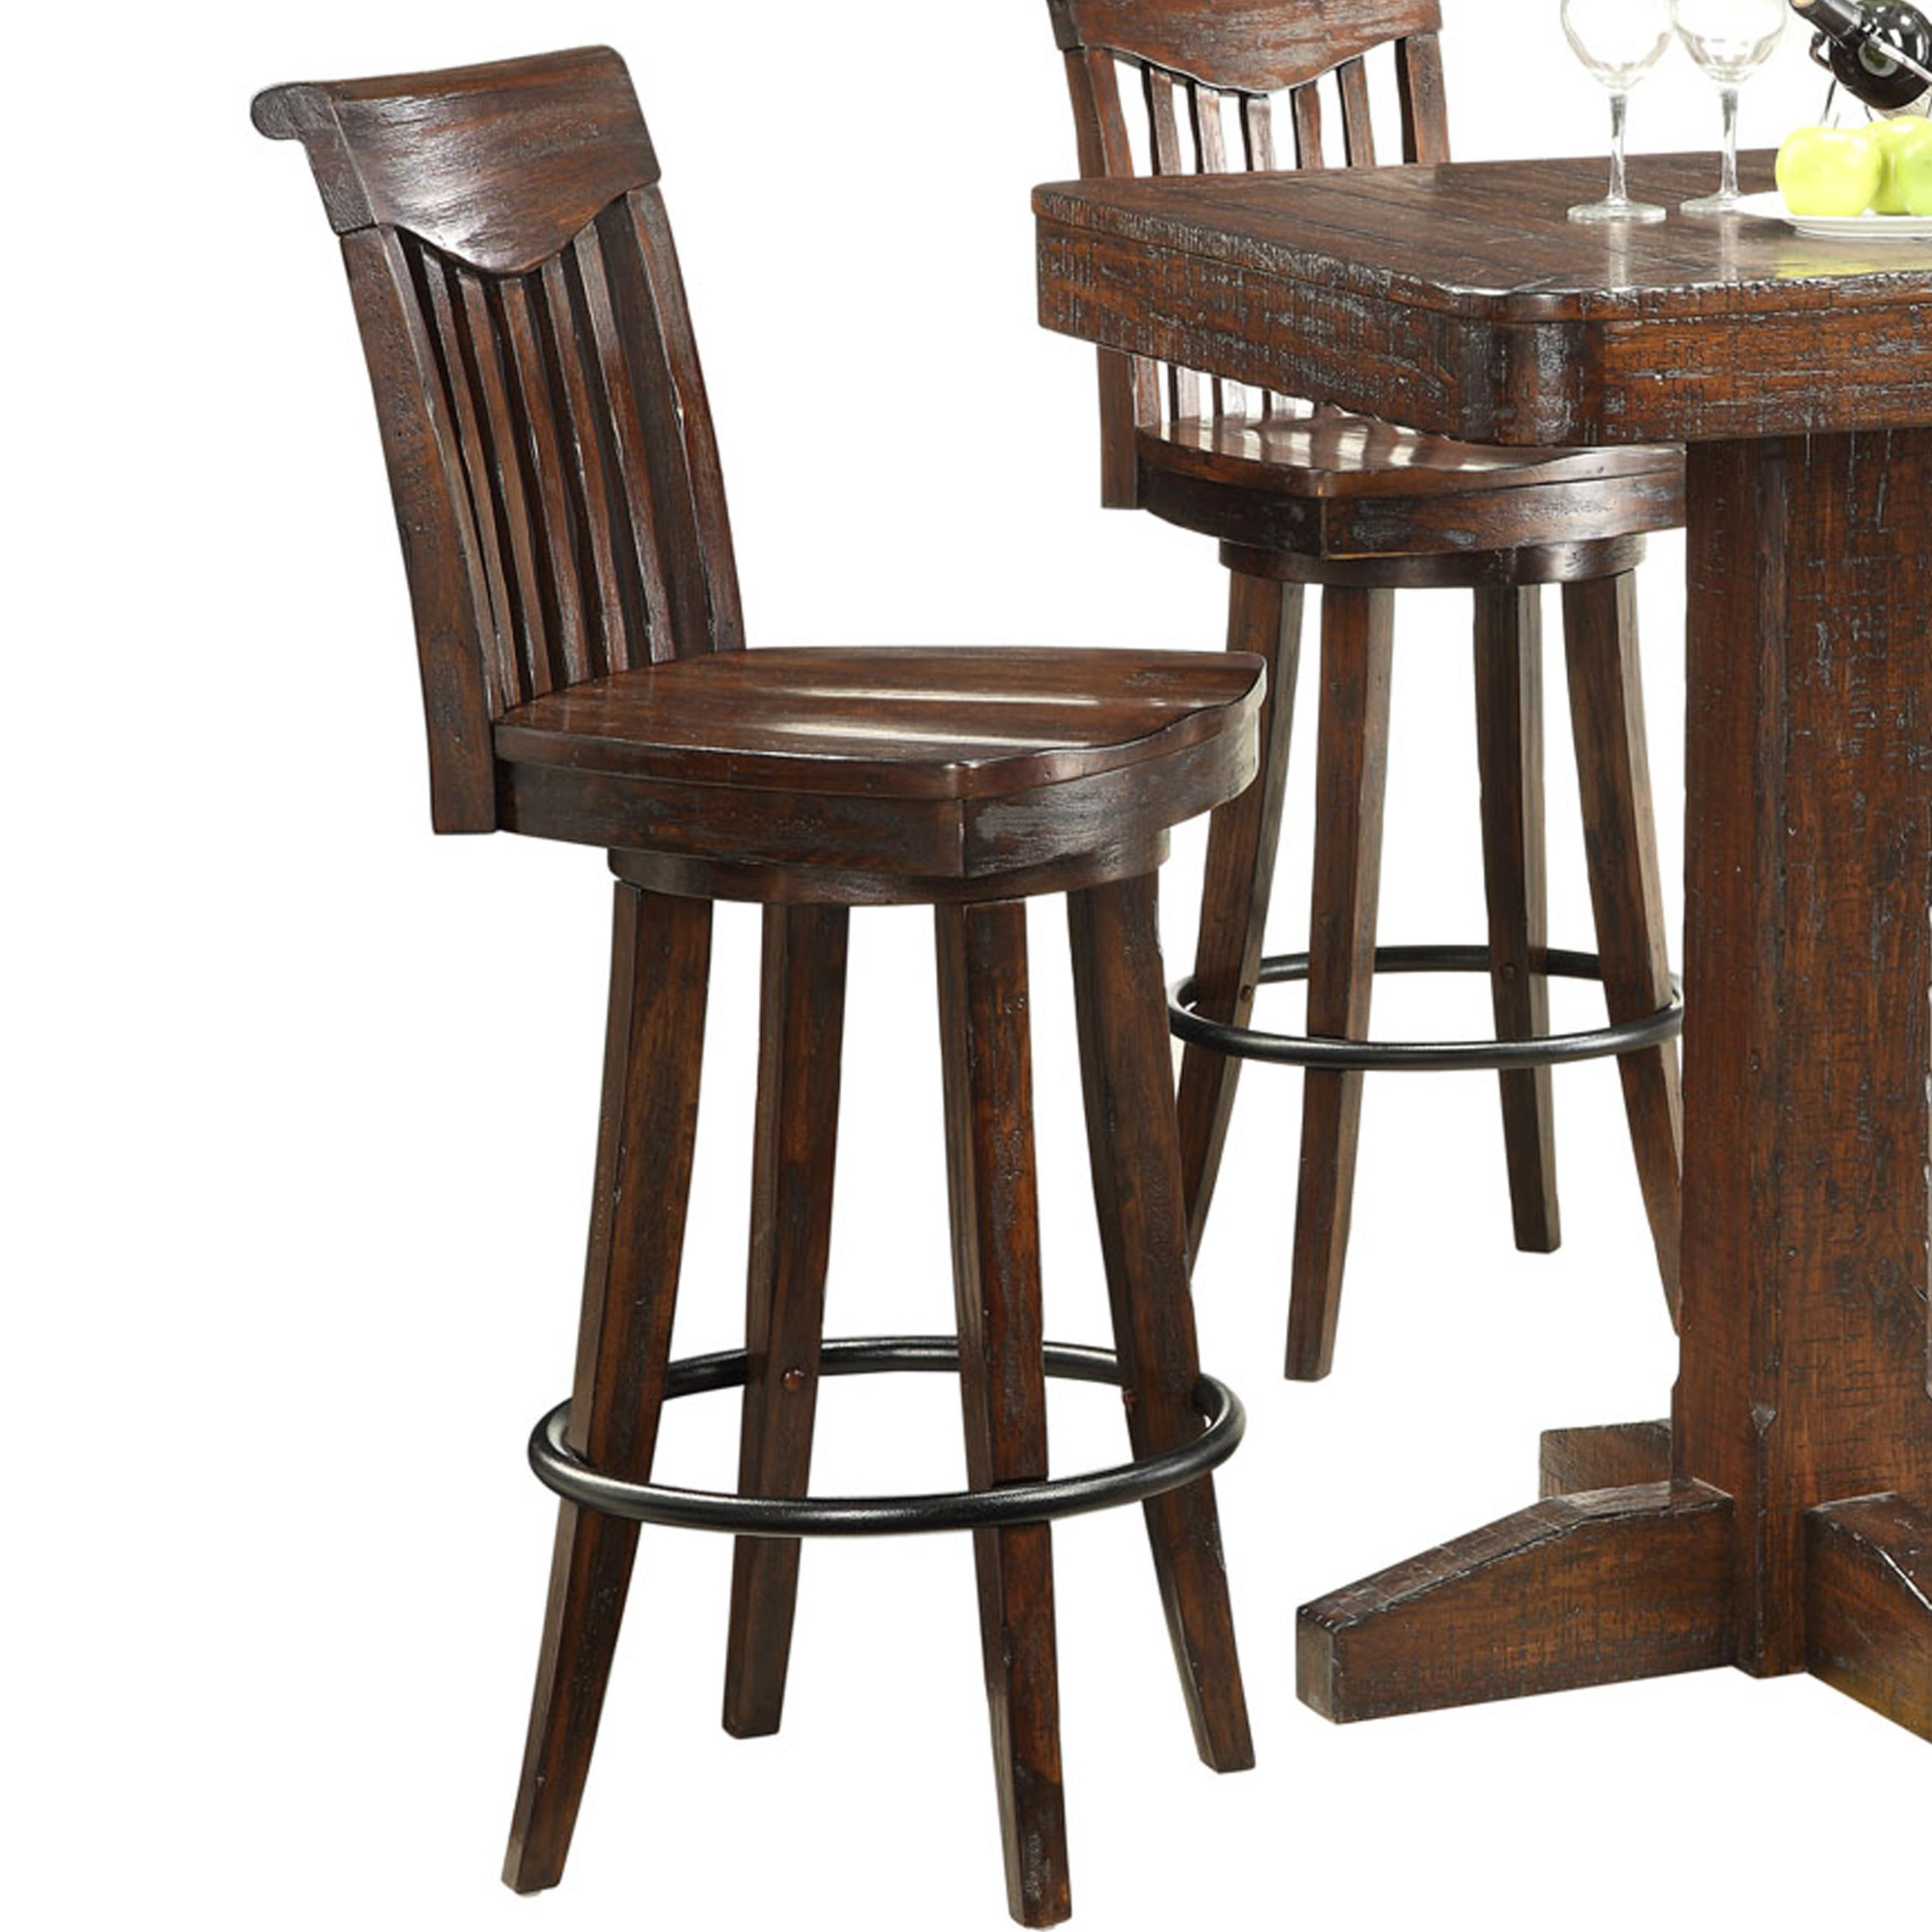 E C I Furniture Gettysburg 1475 05 Bs30 Bar Stools W Sculpted Seats Becker Furniture World